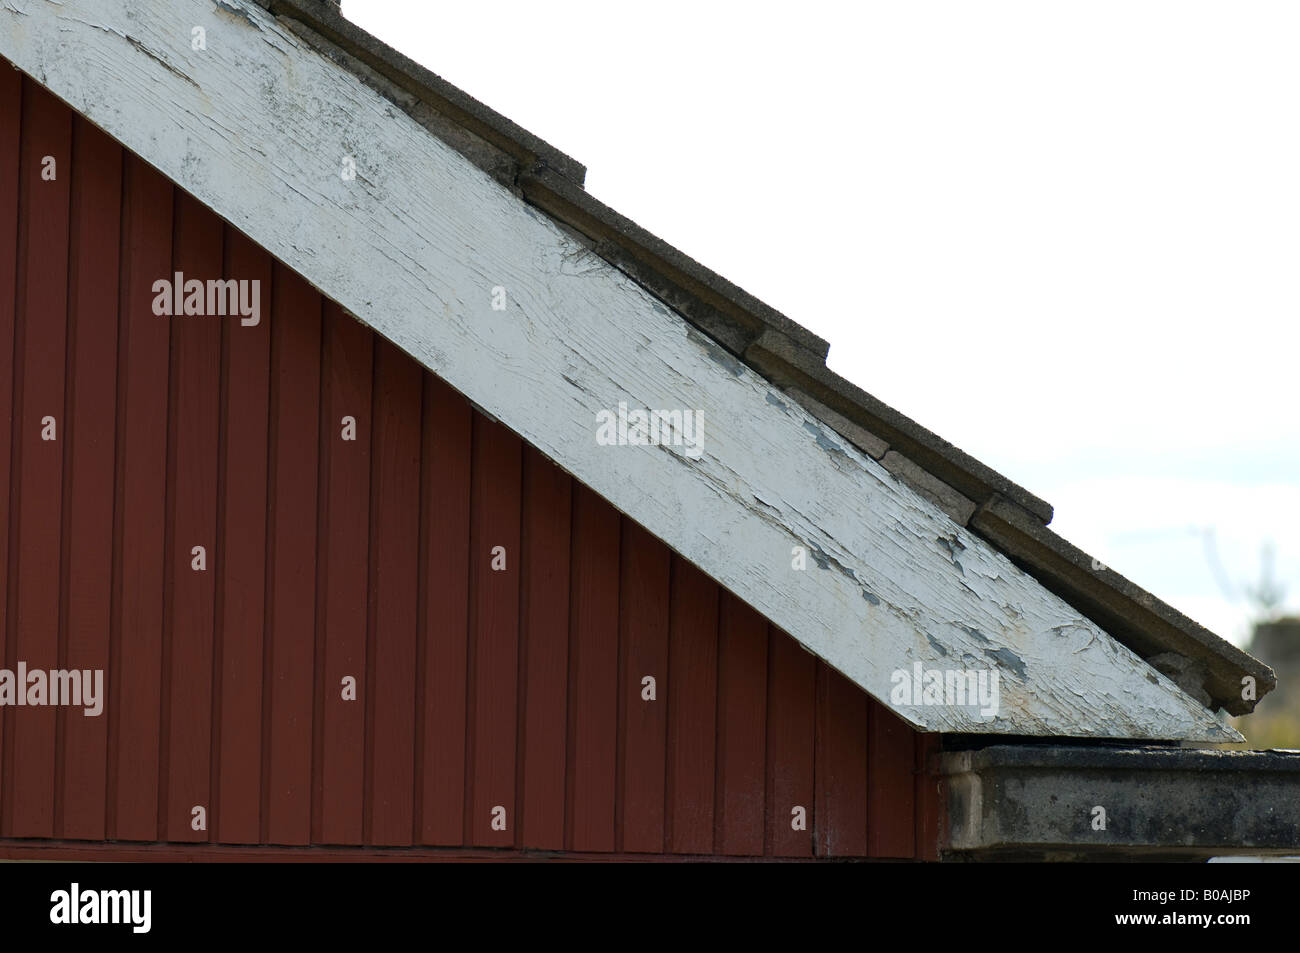 Fascia Board Fascia Board Stock Photos Fascia Board Stock Images Alamy